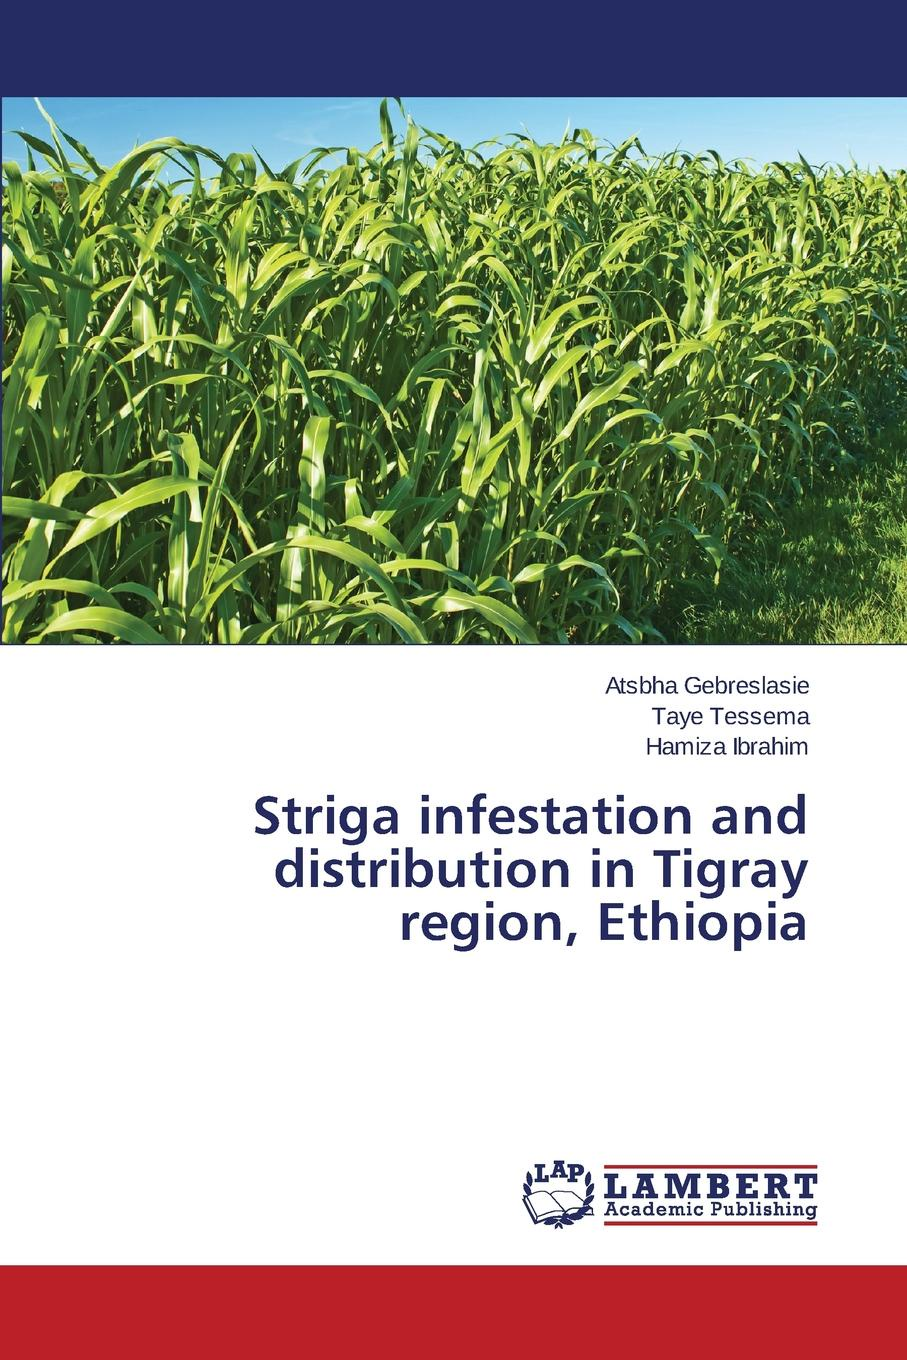 Gebreslasie Atsbha, Tessema Taye, Ibrahim Hamiza Striga infestation and distribution in Tigray region, Ethiopia недорго, оригинальная цена